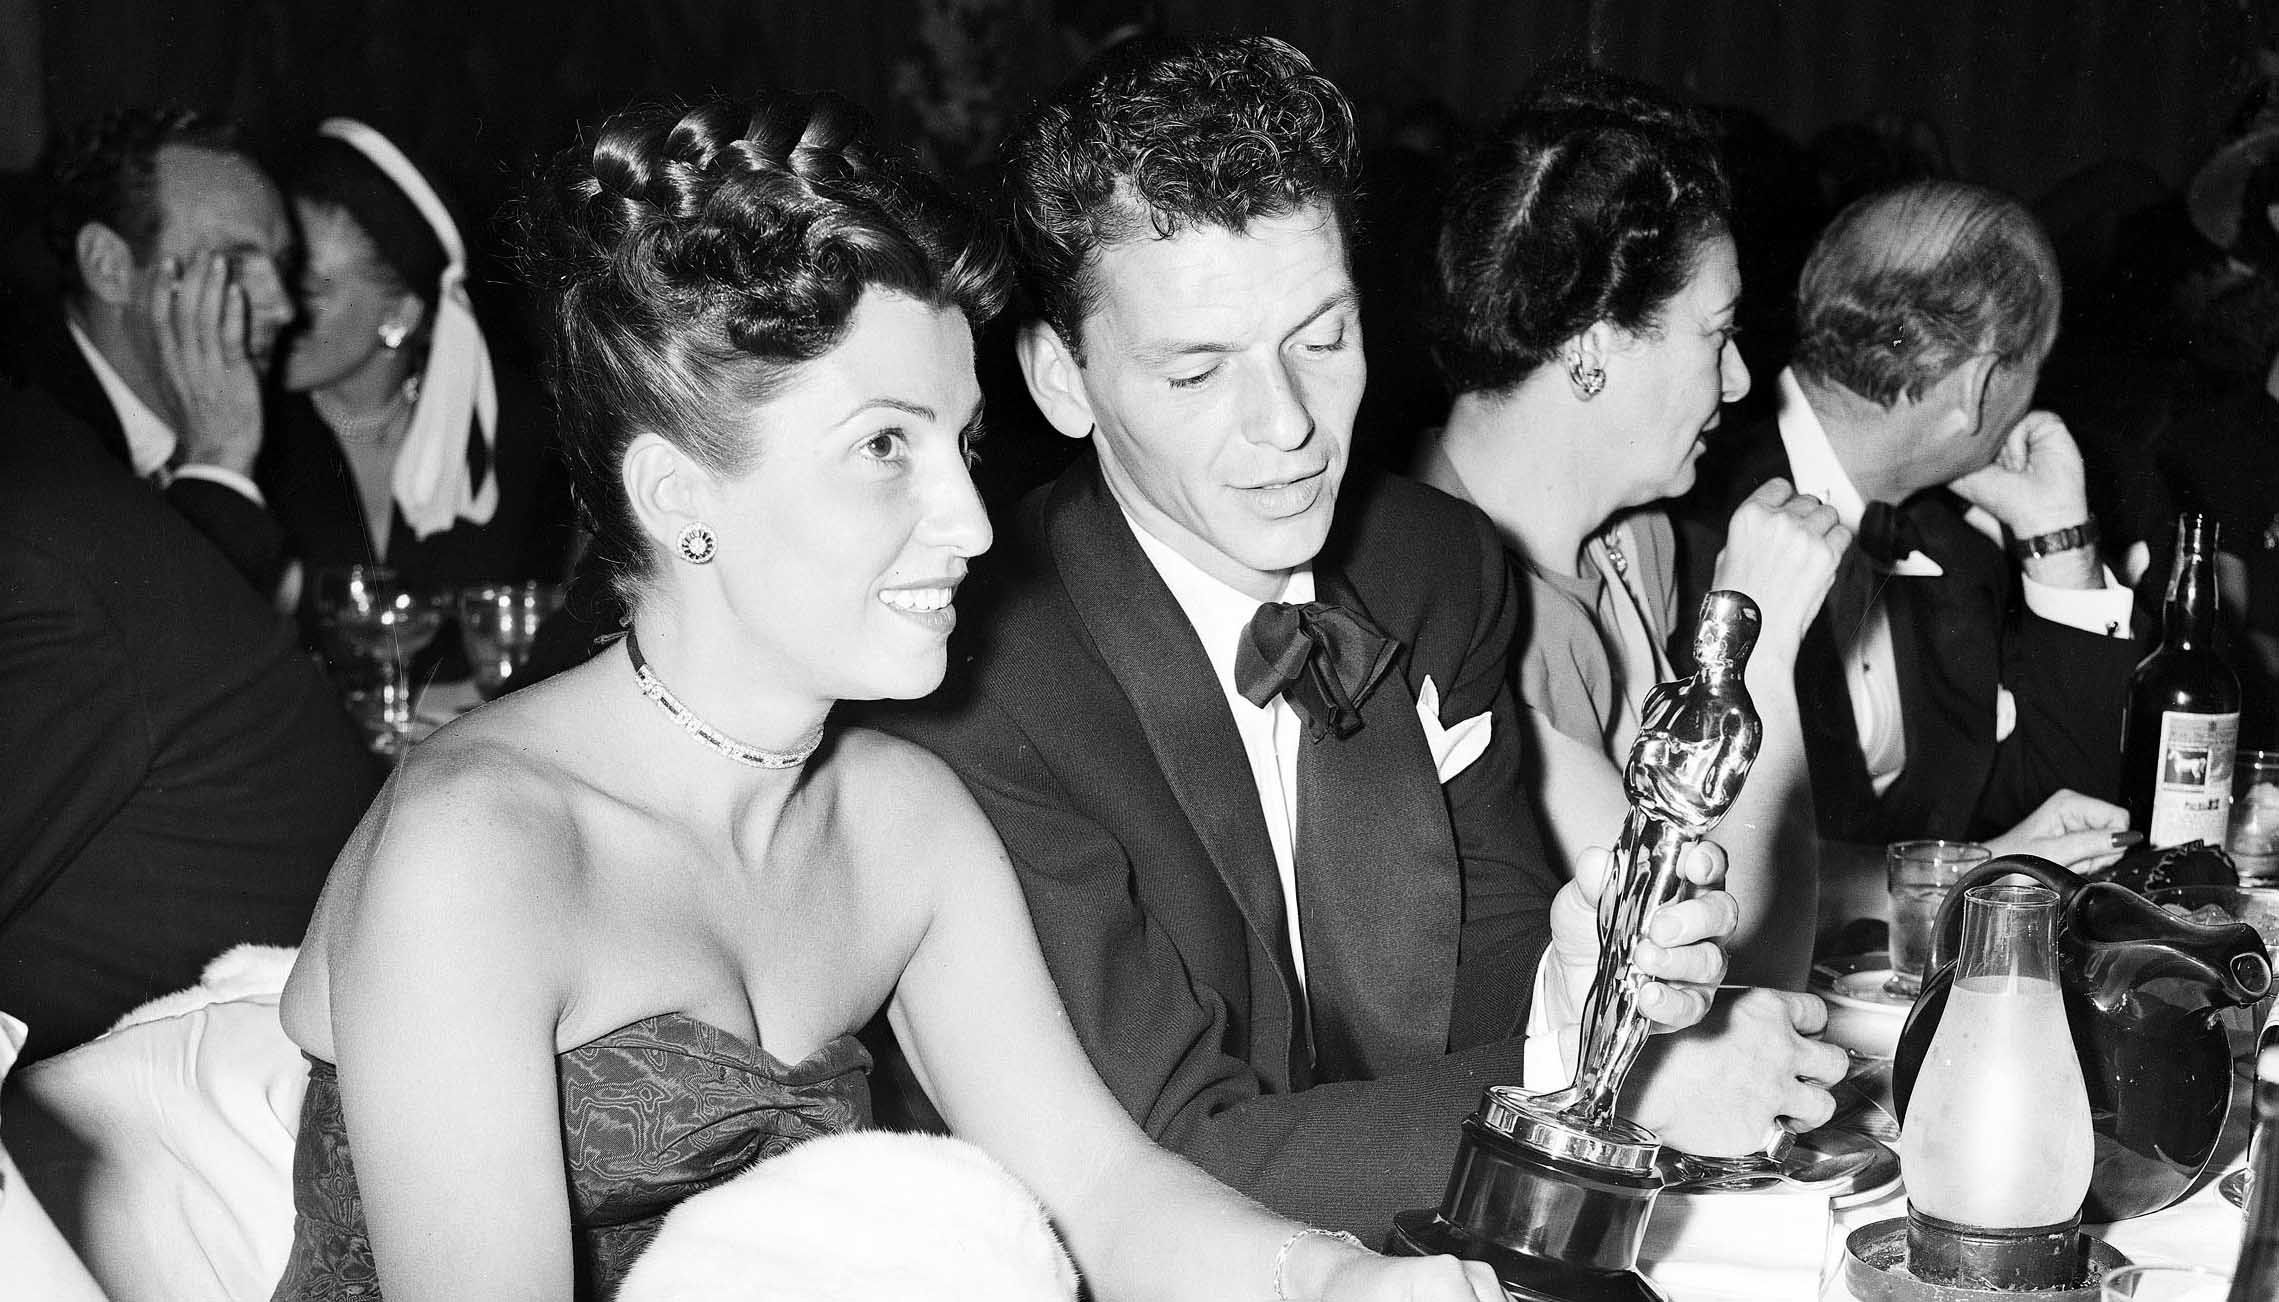 Nancy Sinatra Sr., childhood sweetheart and first wife of Frank Sinatra, has died at 101. (AP Photo/File)